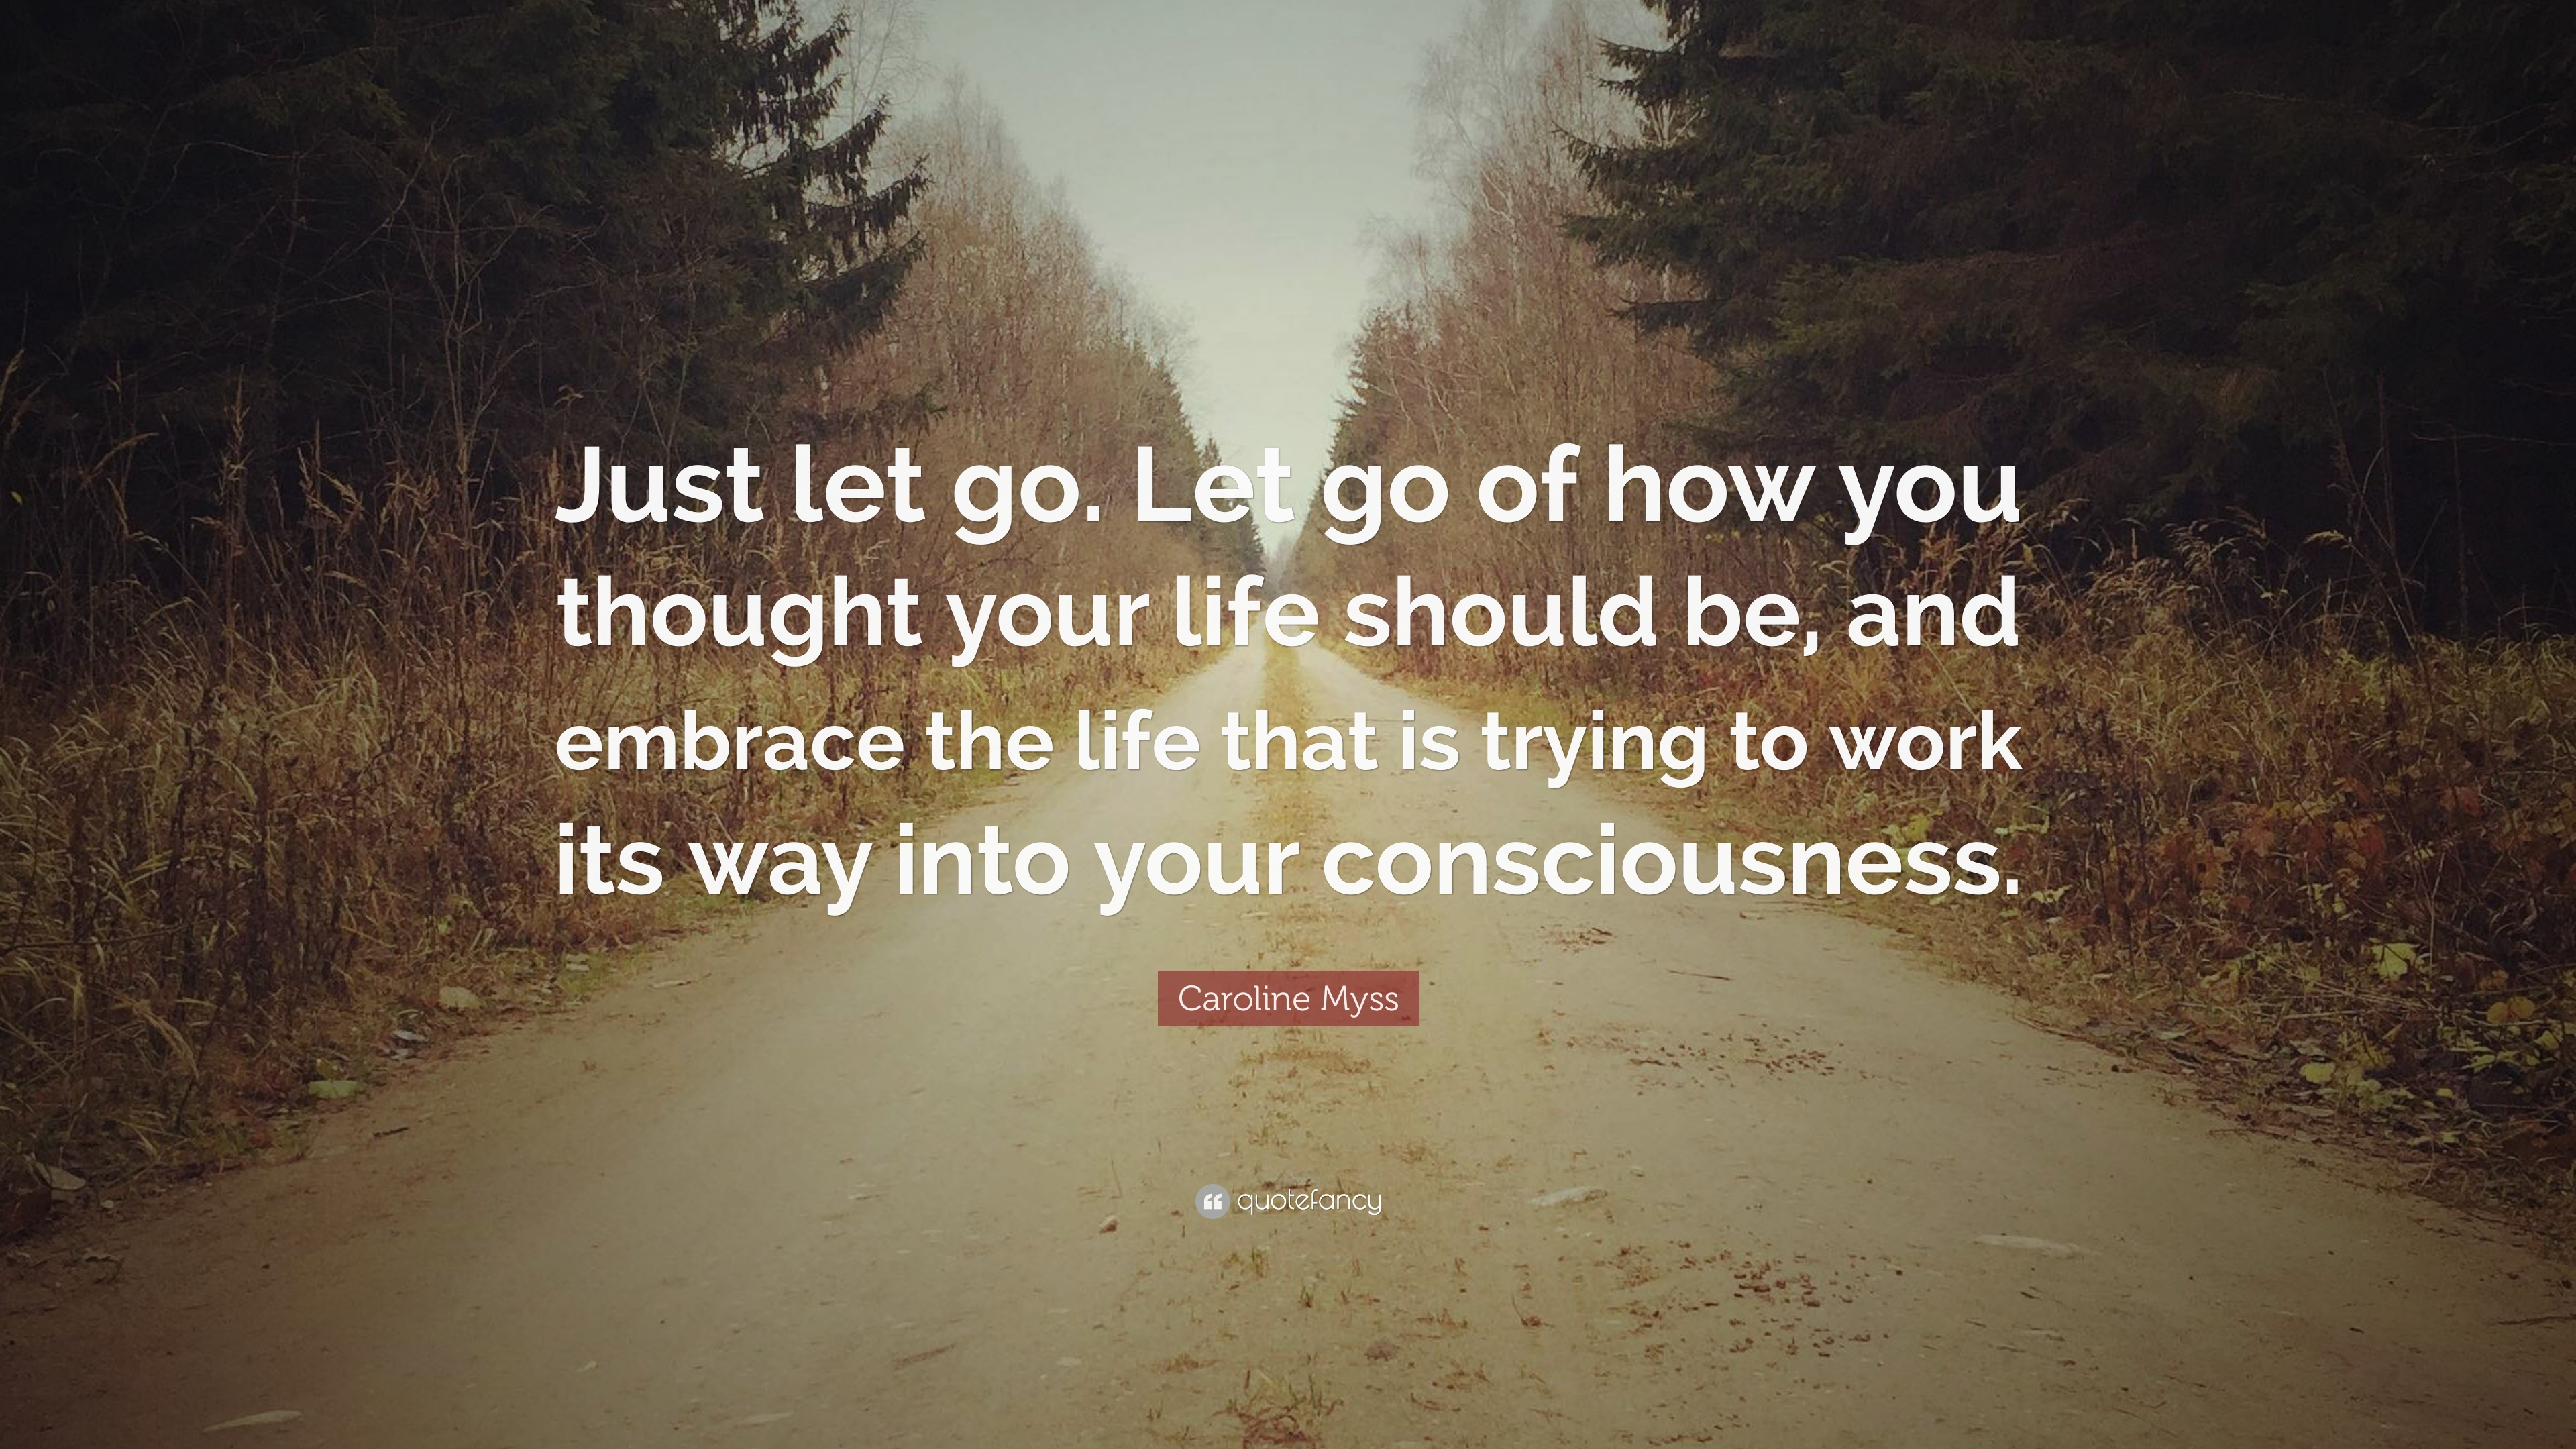 Yoga Letting Go Quotes Private Lessons About Moving On And Of